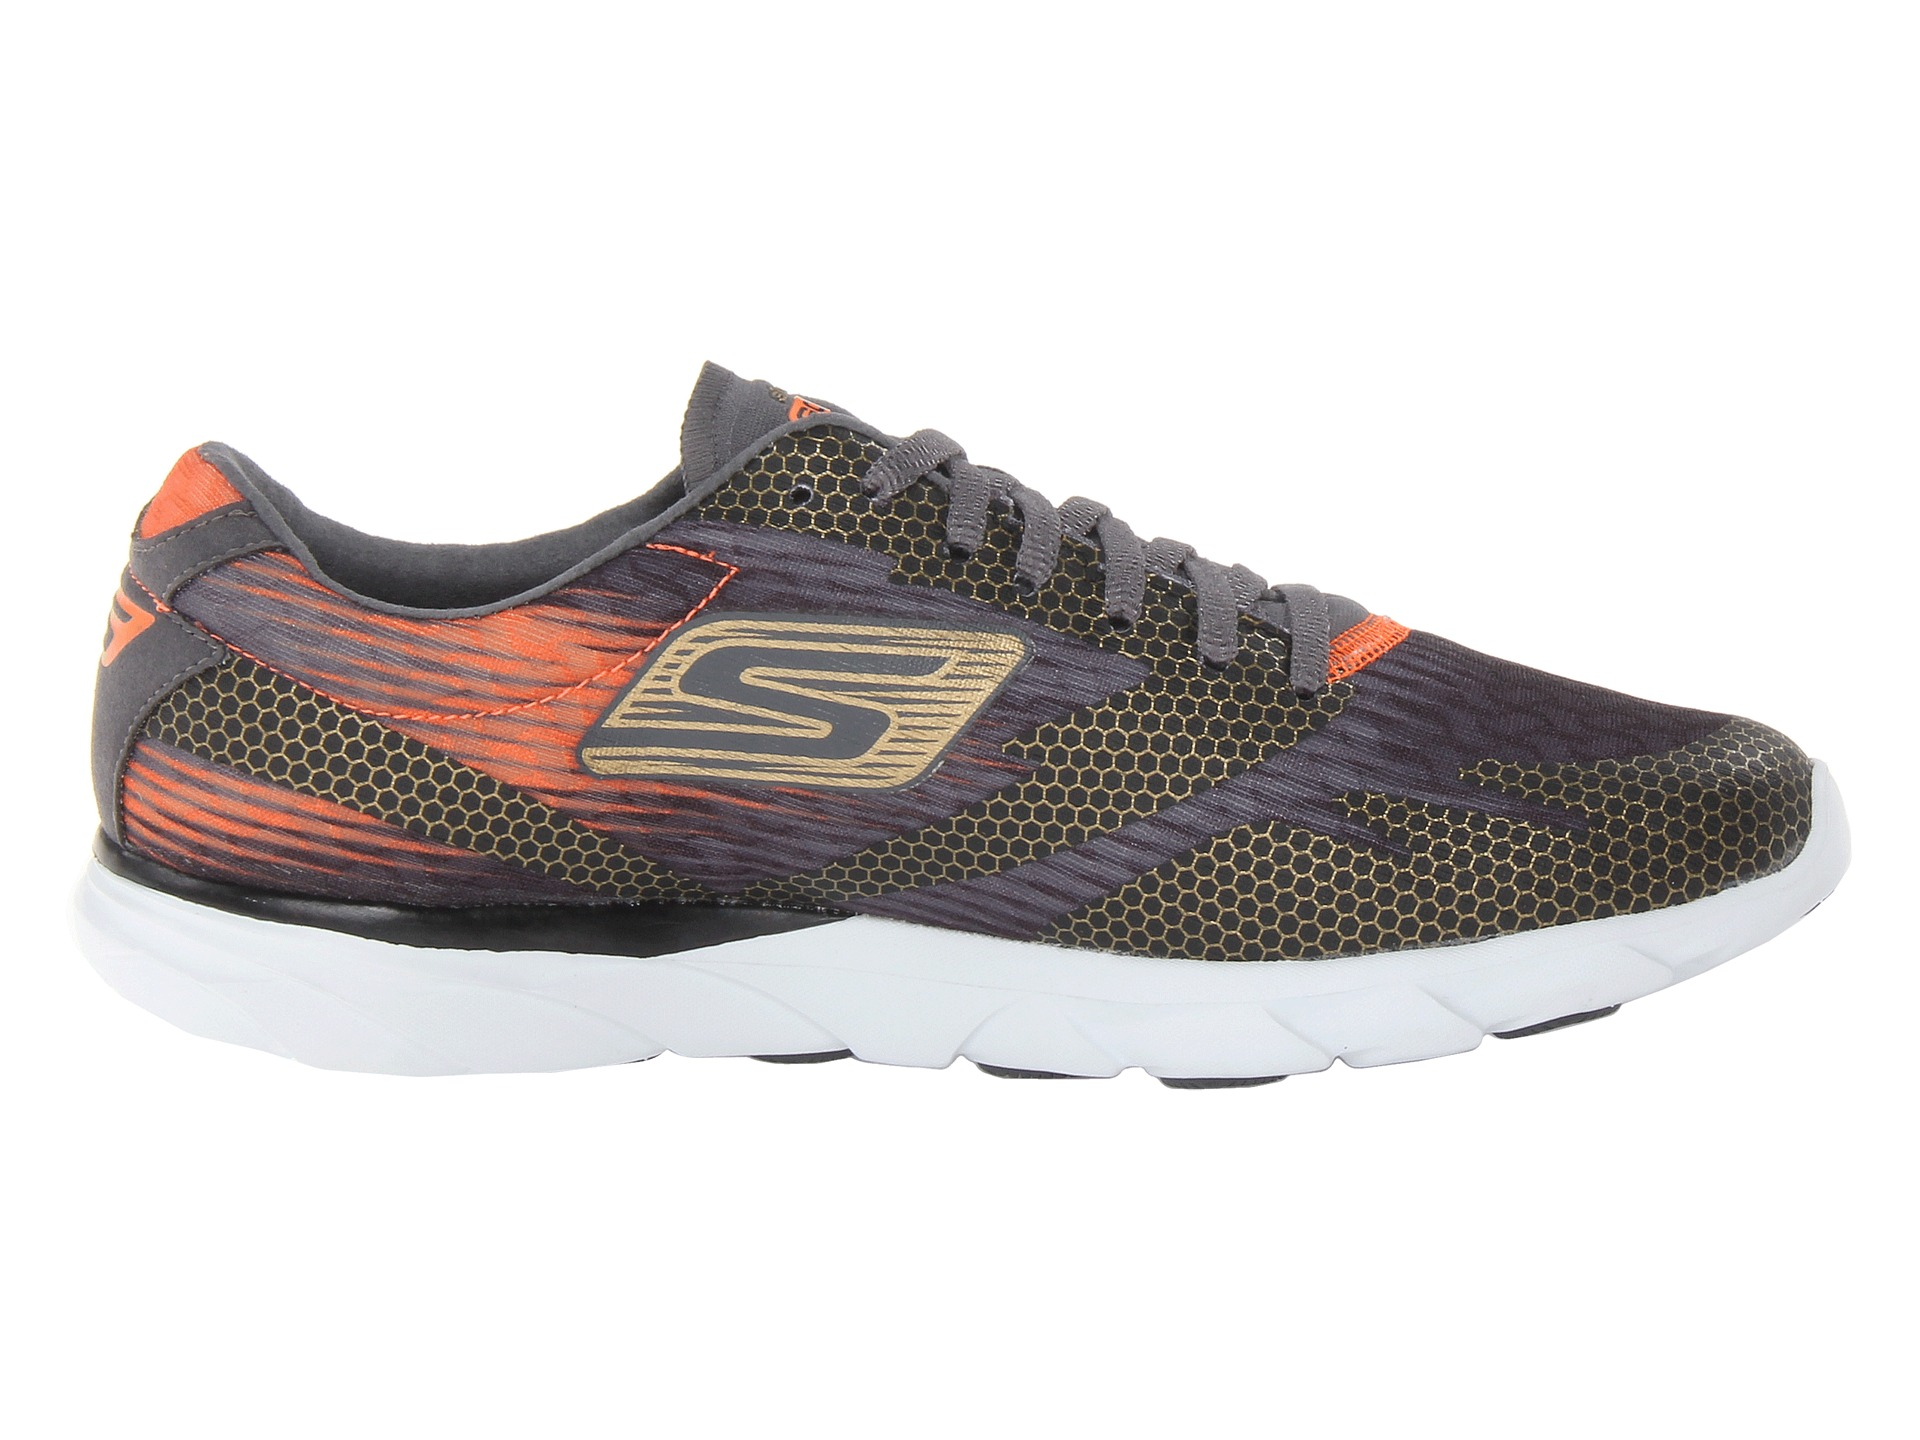 0770a811b85 Skechers GoMeb Speed 2 Review  A Solid Distance Racing Flat